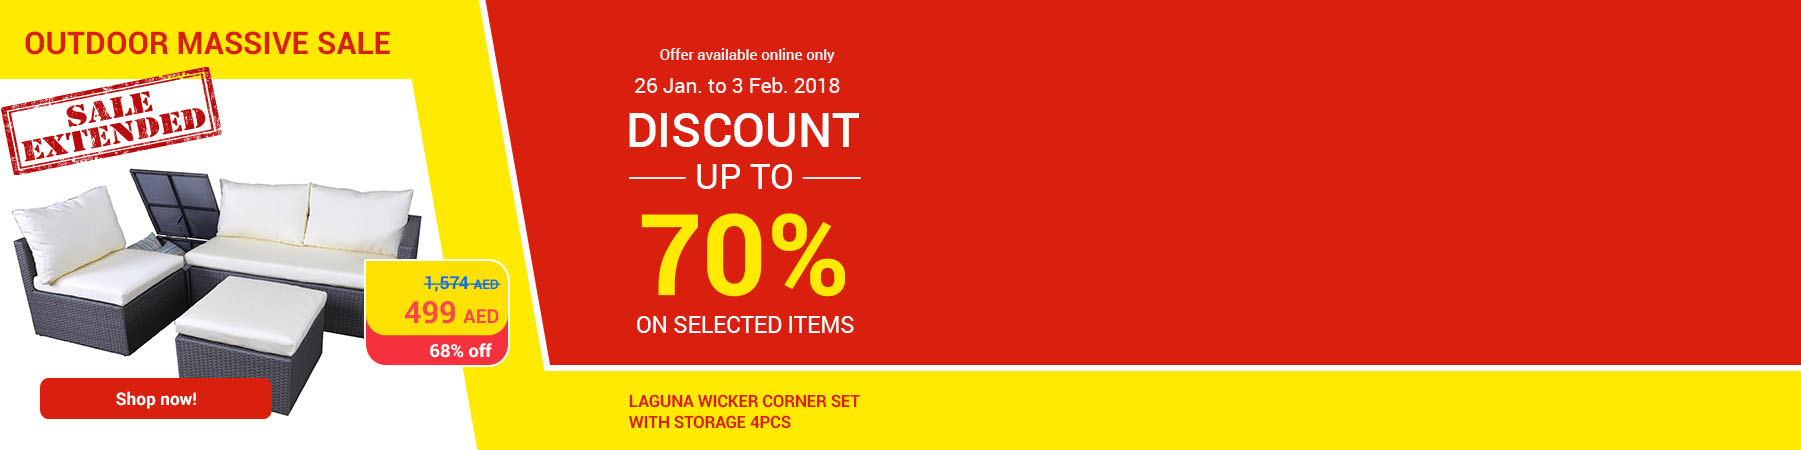 Carrefouruae Offers with massive Outdoor Clearance Sale